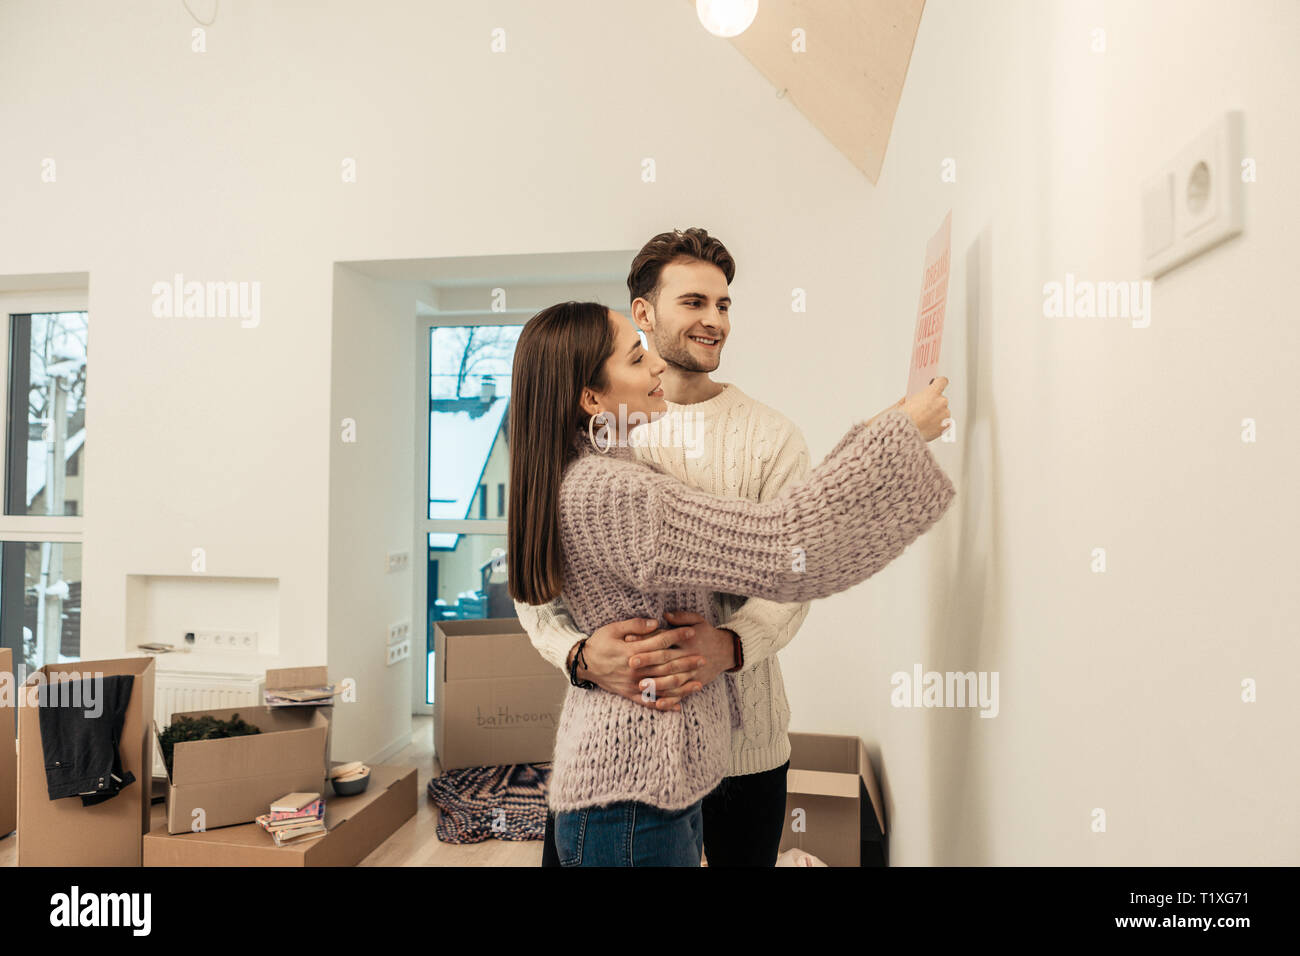 Handsome dark-haired man hugging his wife decorating the wall - Stock Image